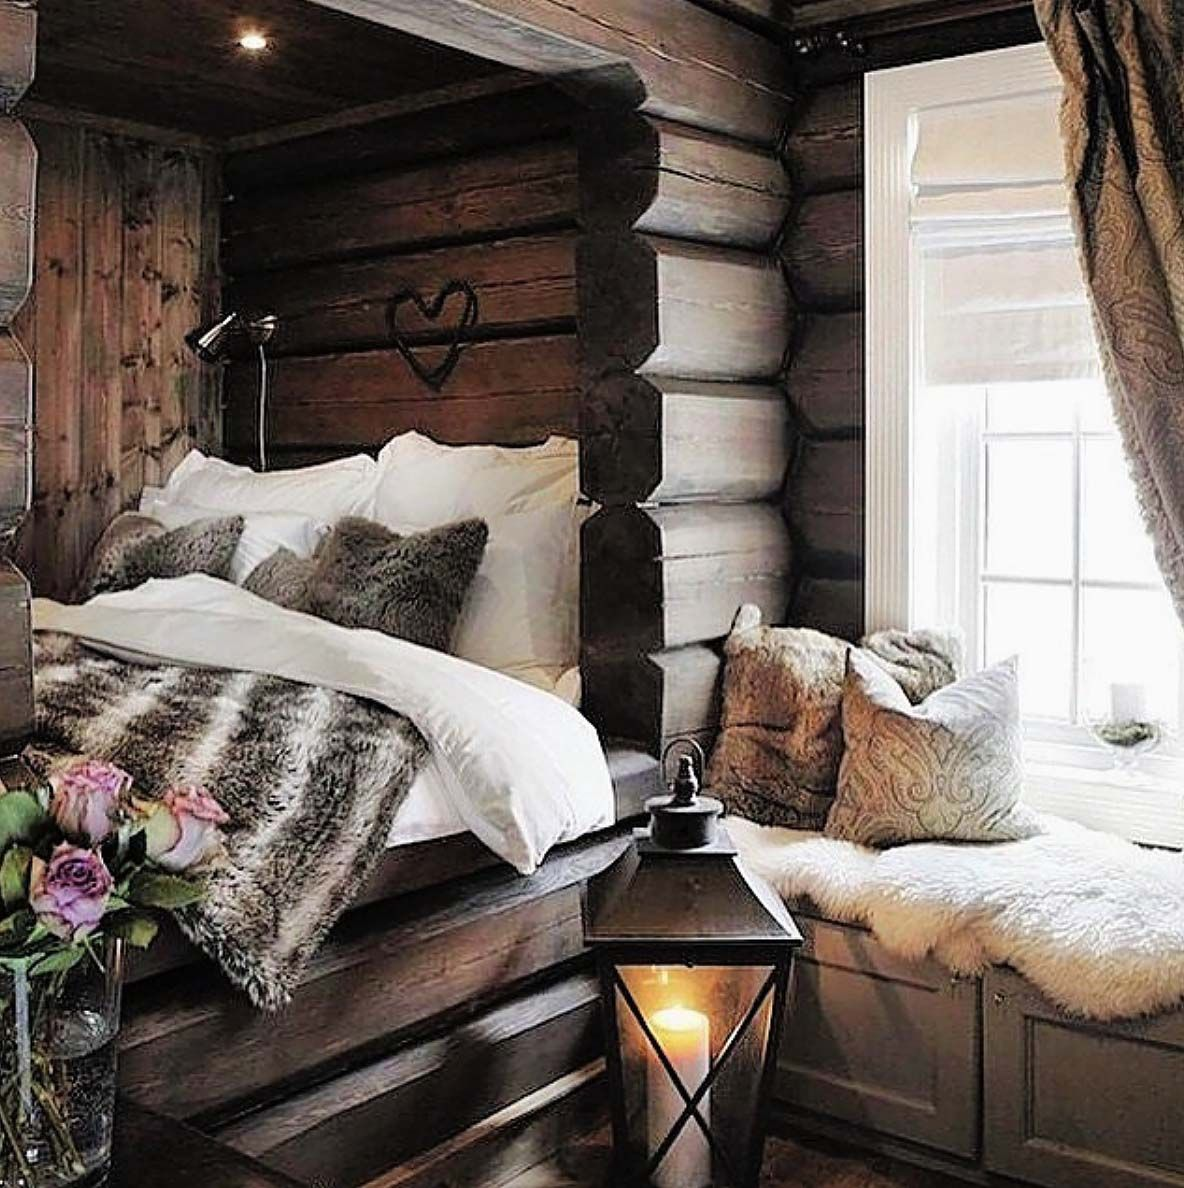 Decoration Cosy 33 Ultra Cozy Bedroom Decorating Ideas For Winter Warmth